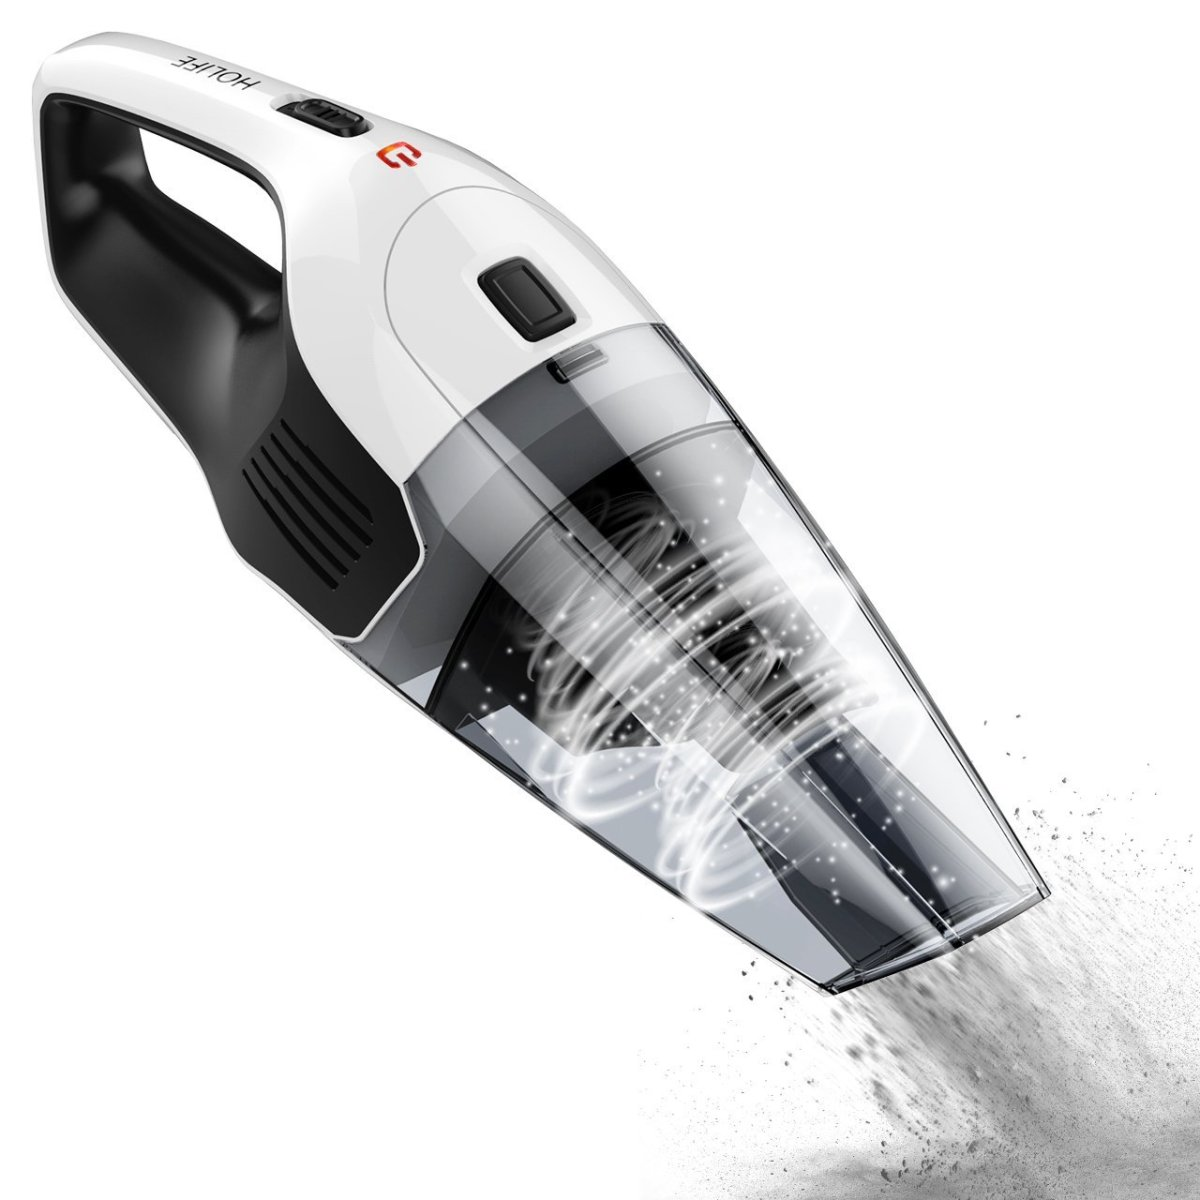 HoLife Cordless Vacuum Cleaner with 14.8V Li-ion Battery